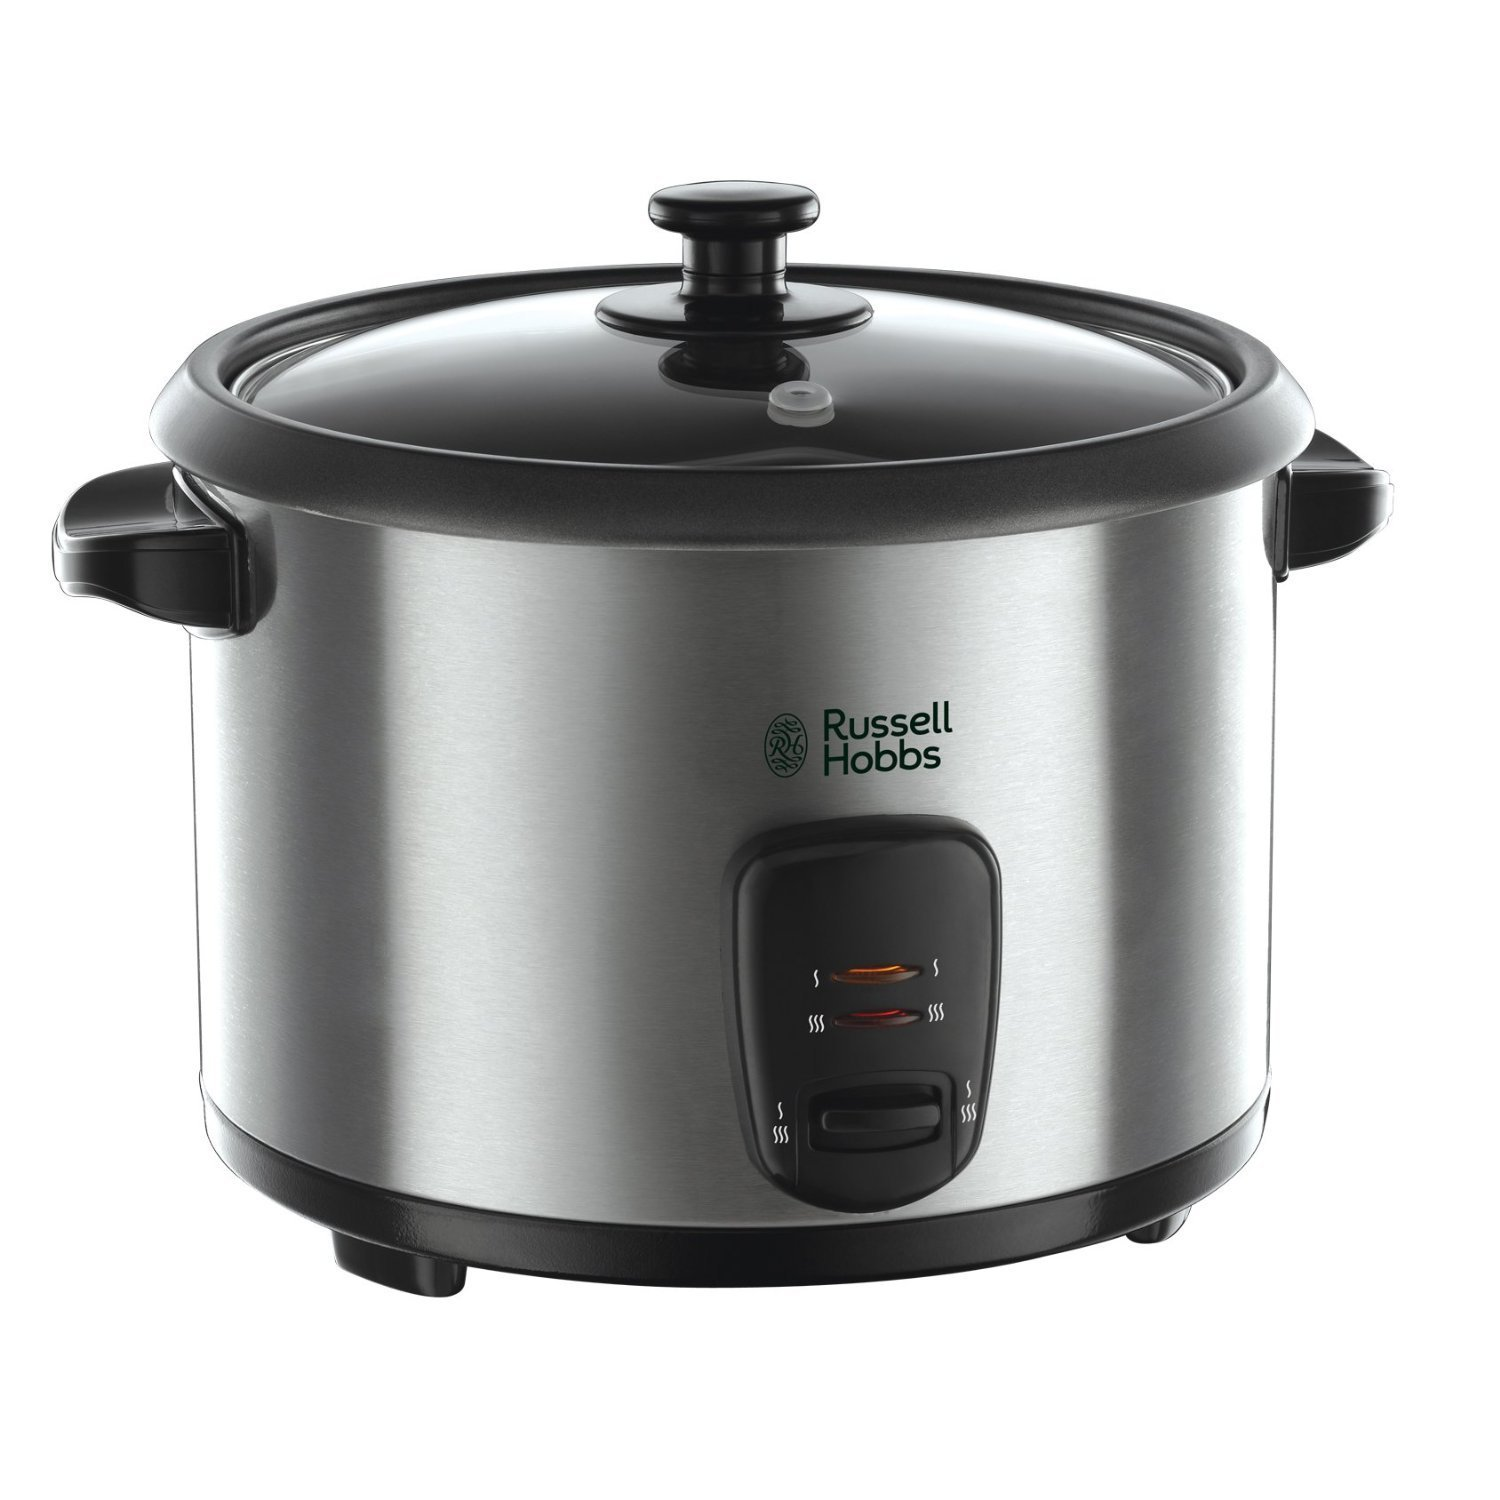 avis-test-rice-cooker-russel-hobbs